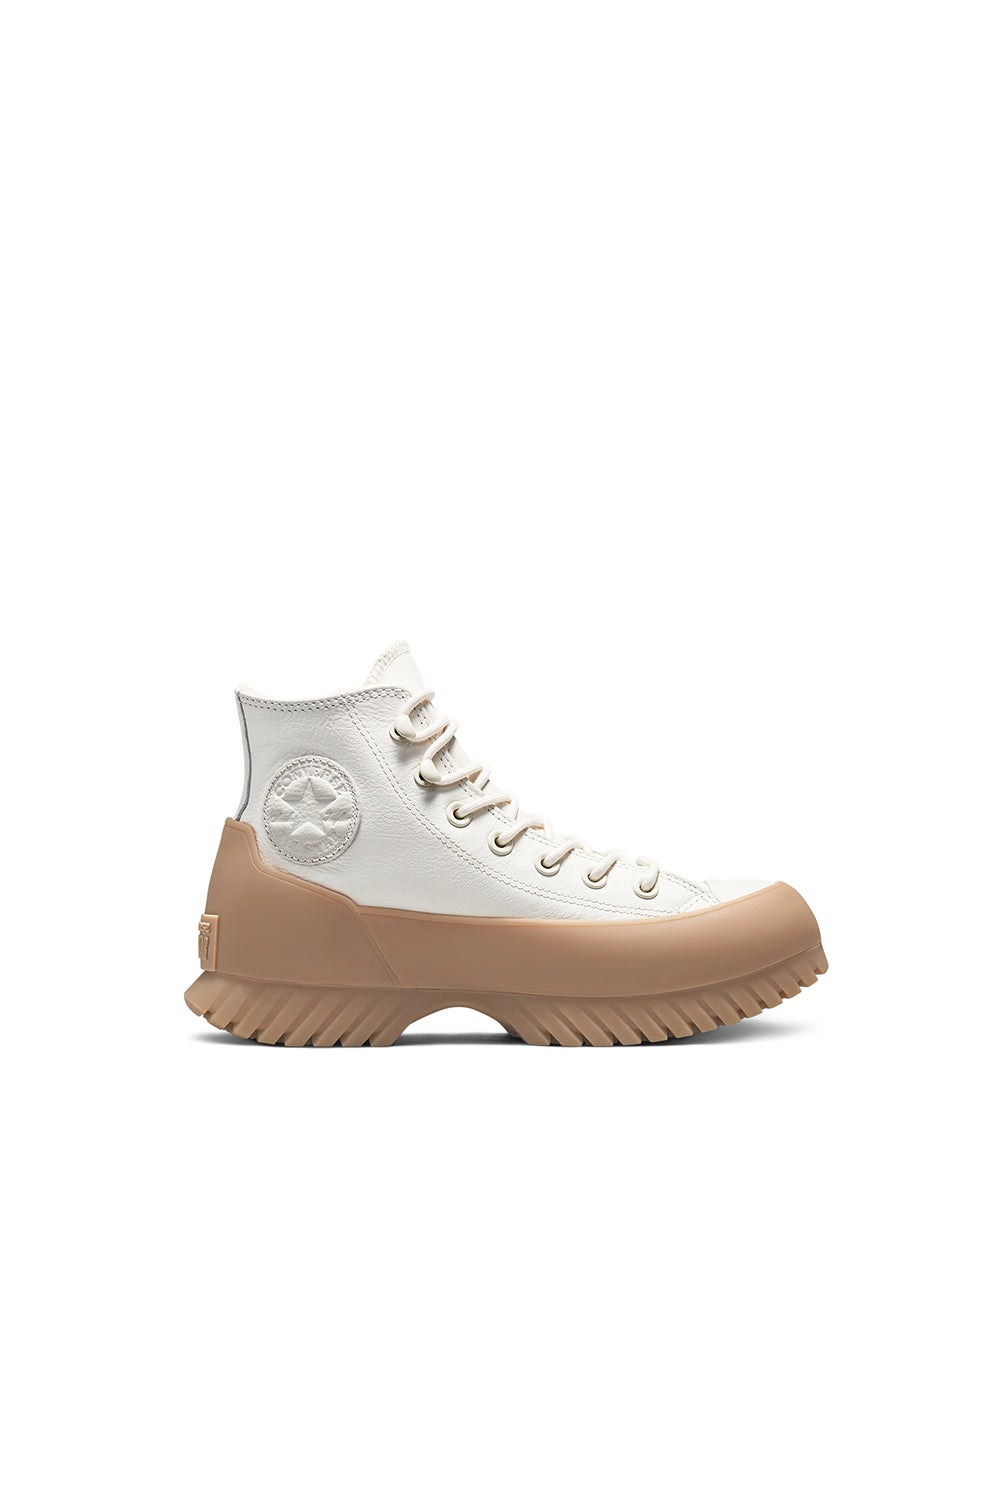 Converse Chuck Taylor All Star Lugged Winter 2.0 High Top Boot Egret